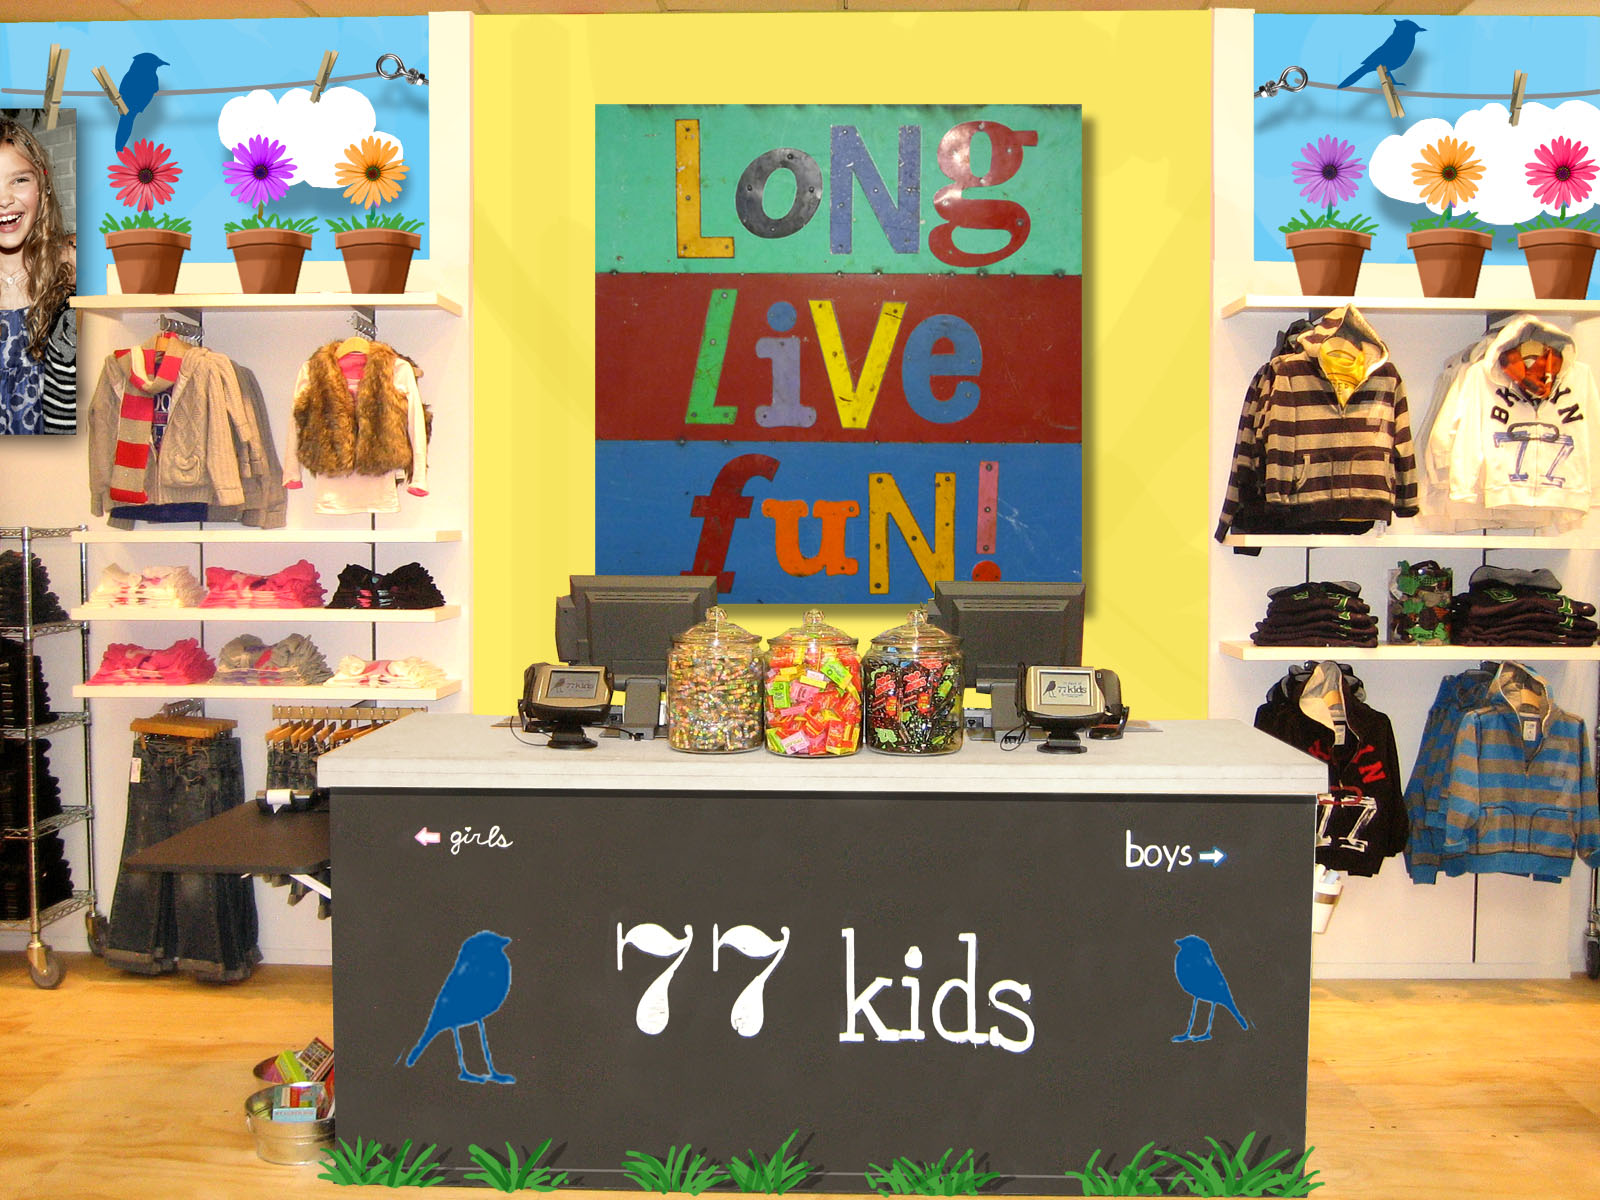 77 Kids by American Eagle Pittsburgh, PA